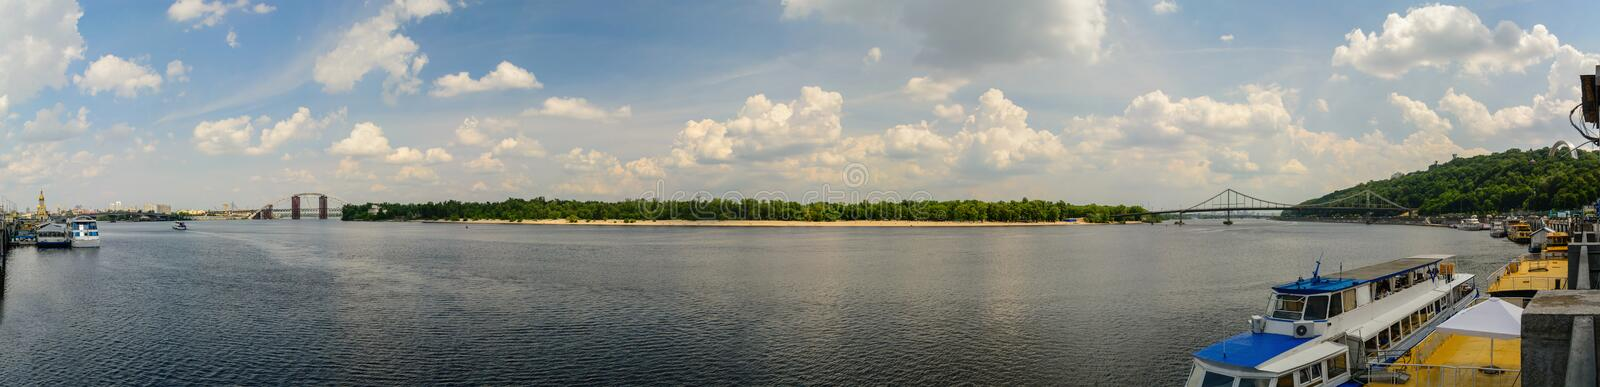 Panorama of the Dnieper River in Kiev in the summer. 53 megapixels stock image